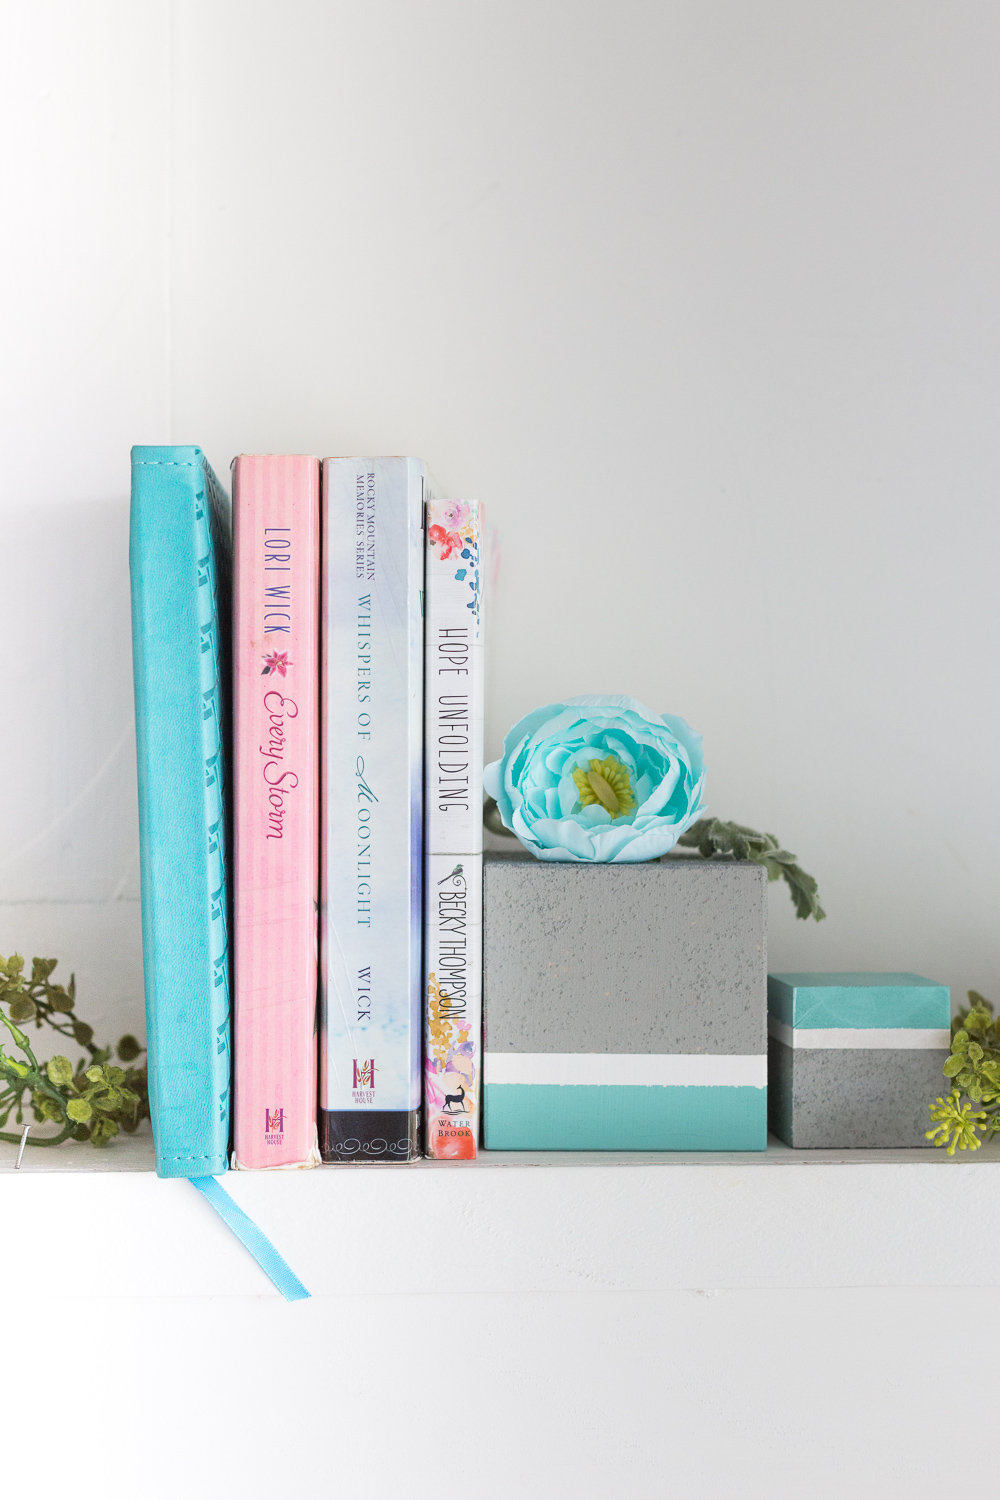 Faux Cement Color Block Bookends: wood blocks and FolkArt Painted Finishes make for a beautiful decor piece.